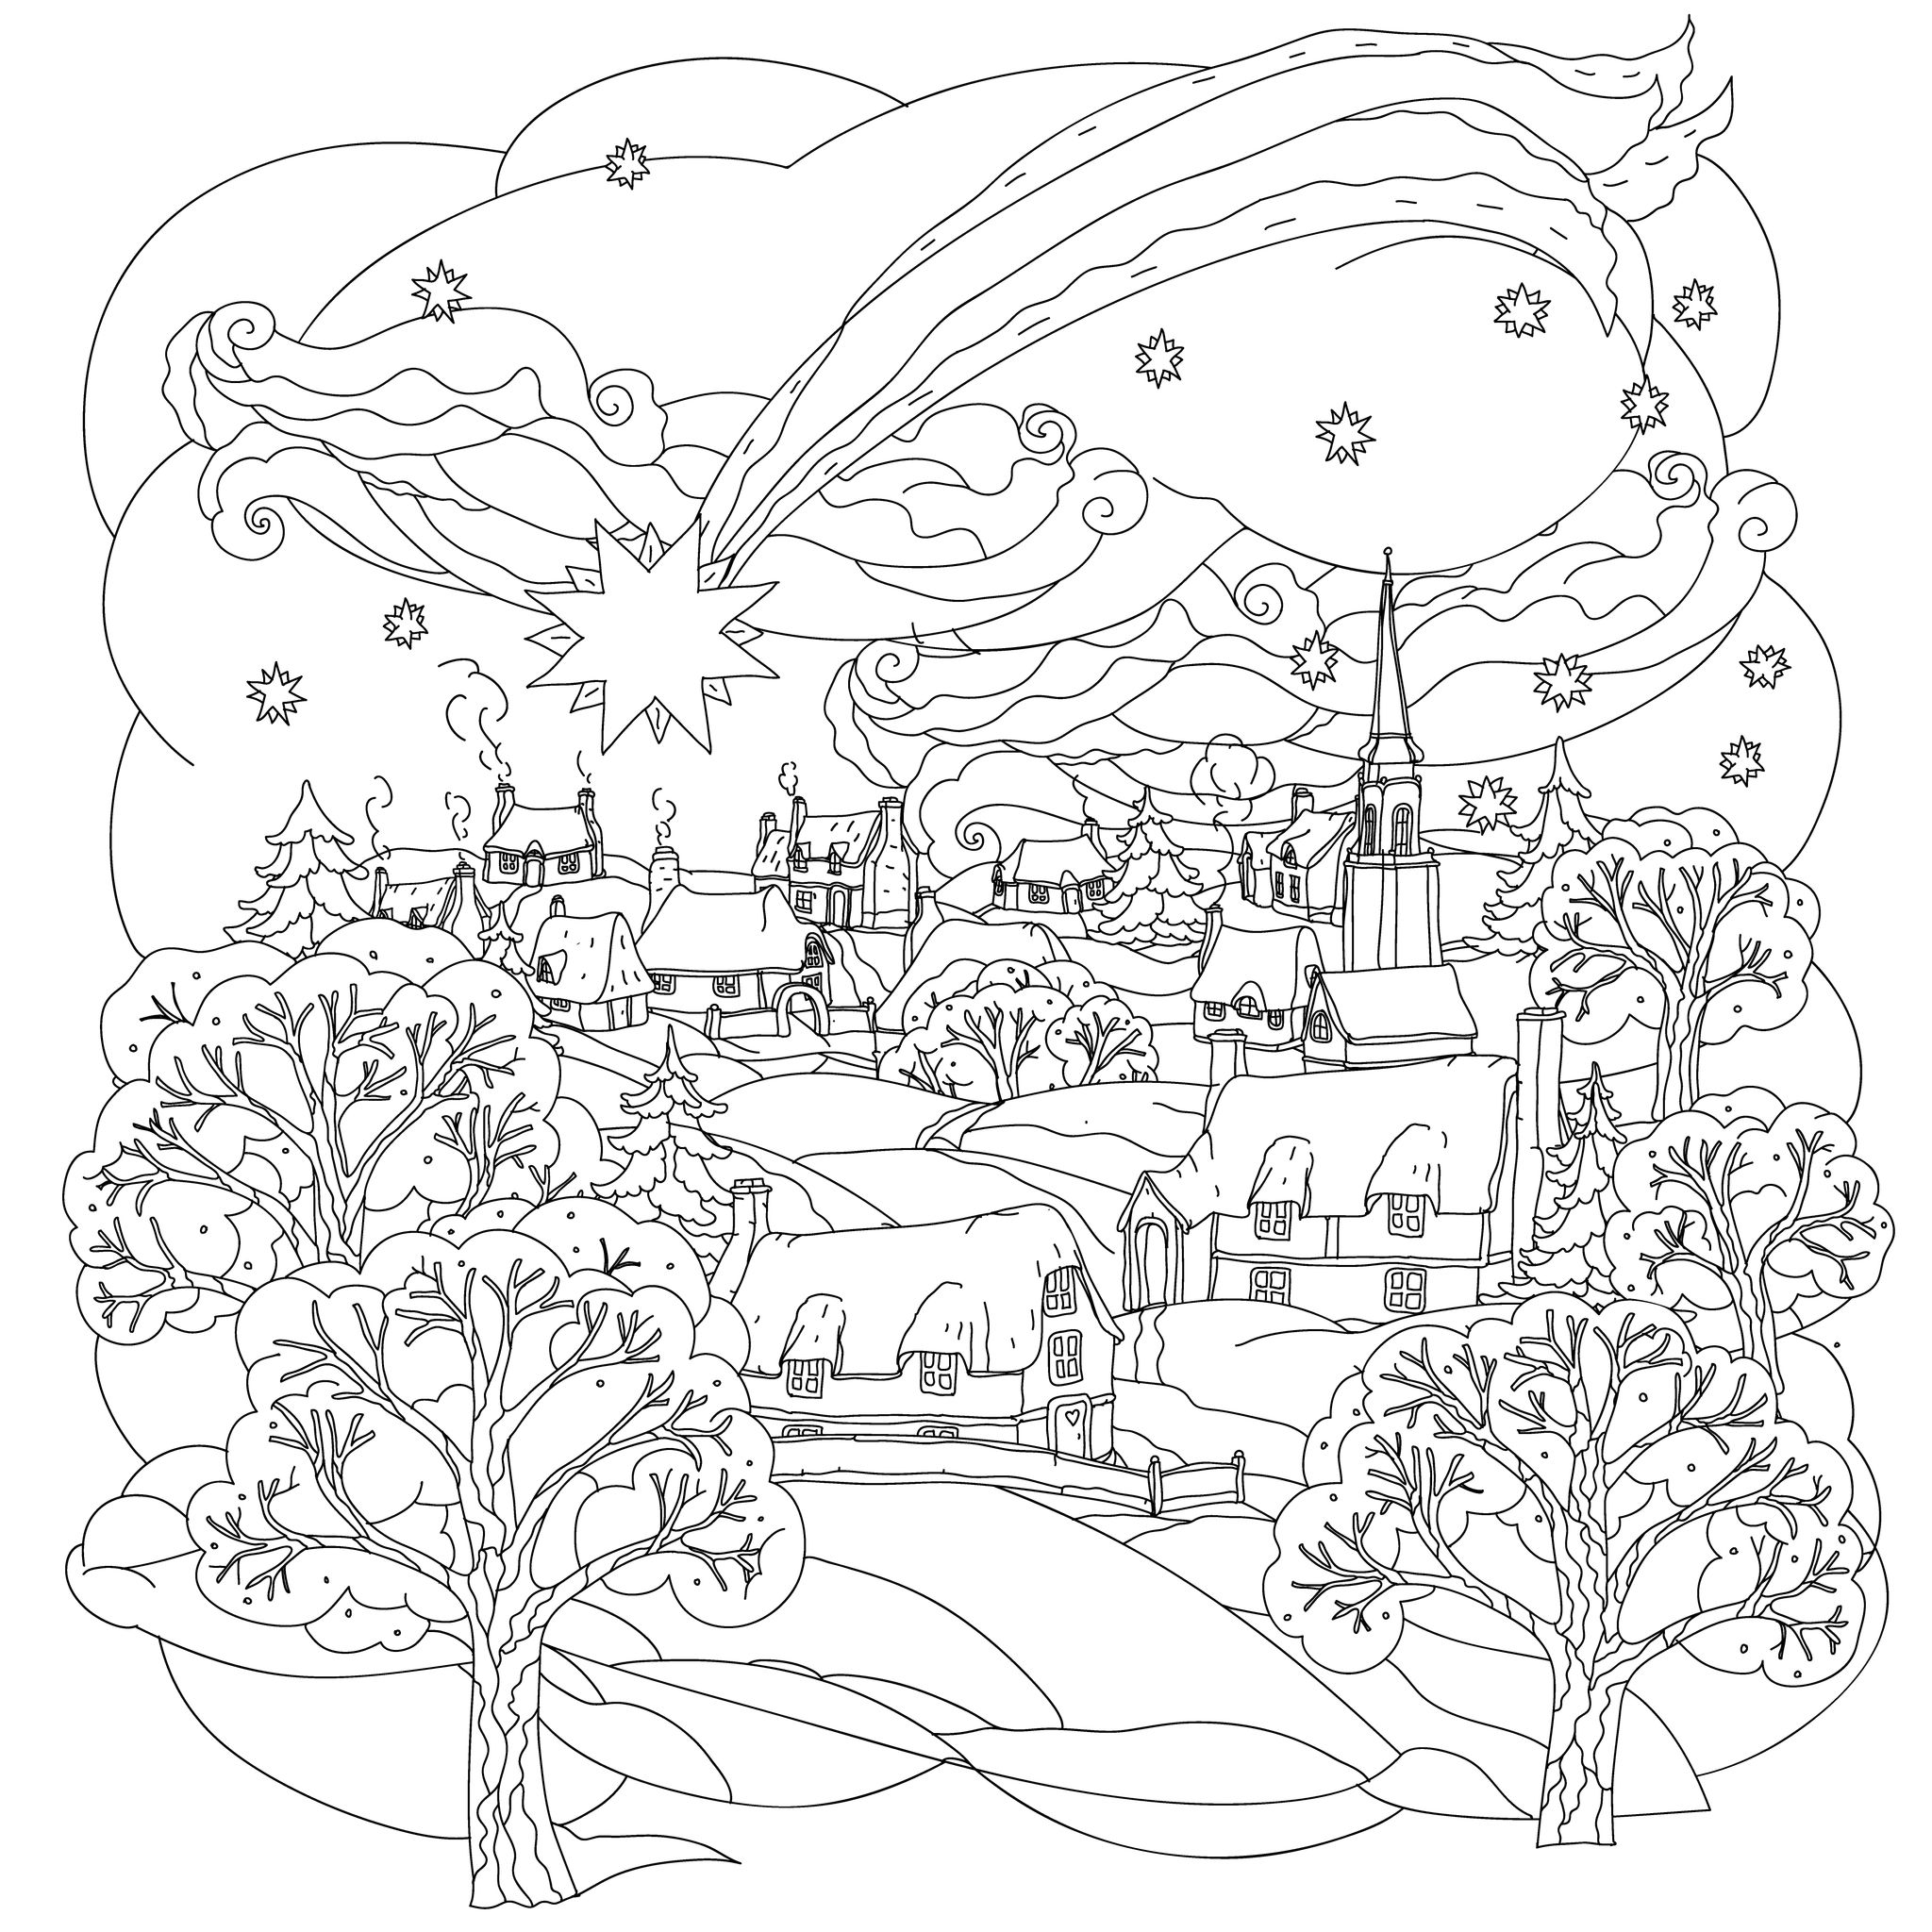 Christmas coloring pages for adults best coloring pages for Free printable coloring pages for adults and kids